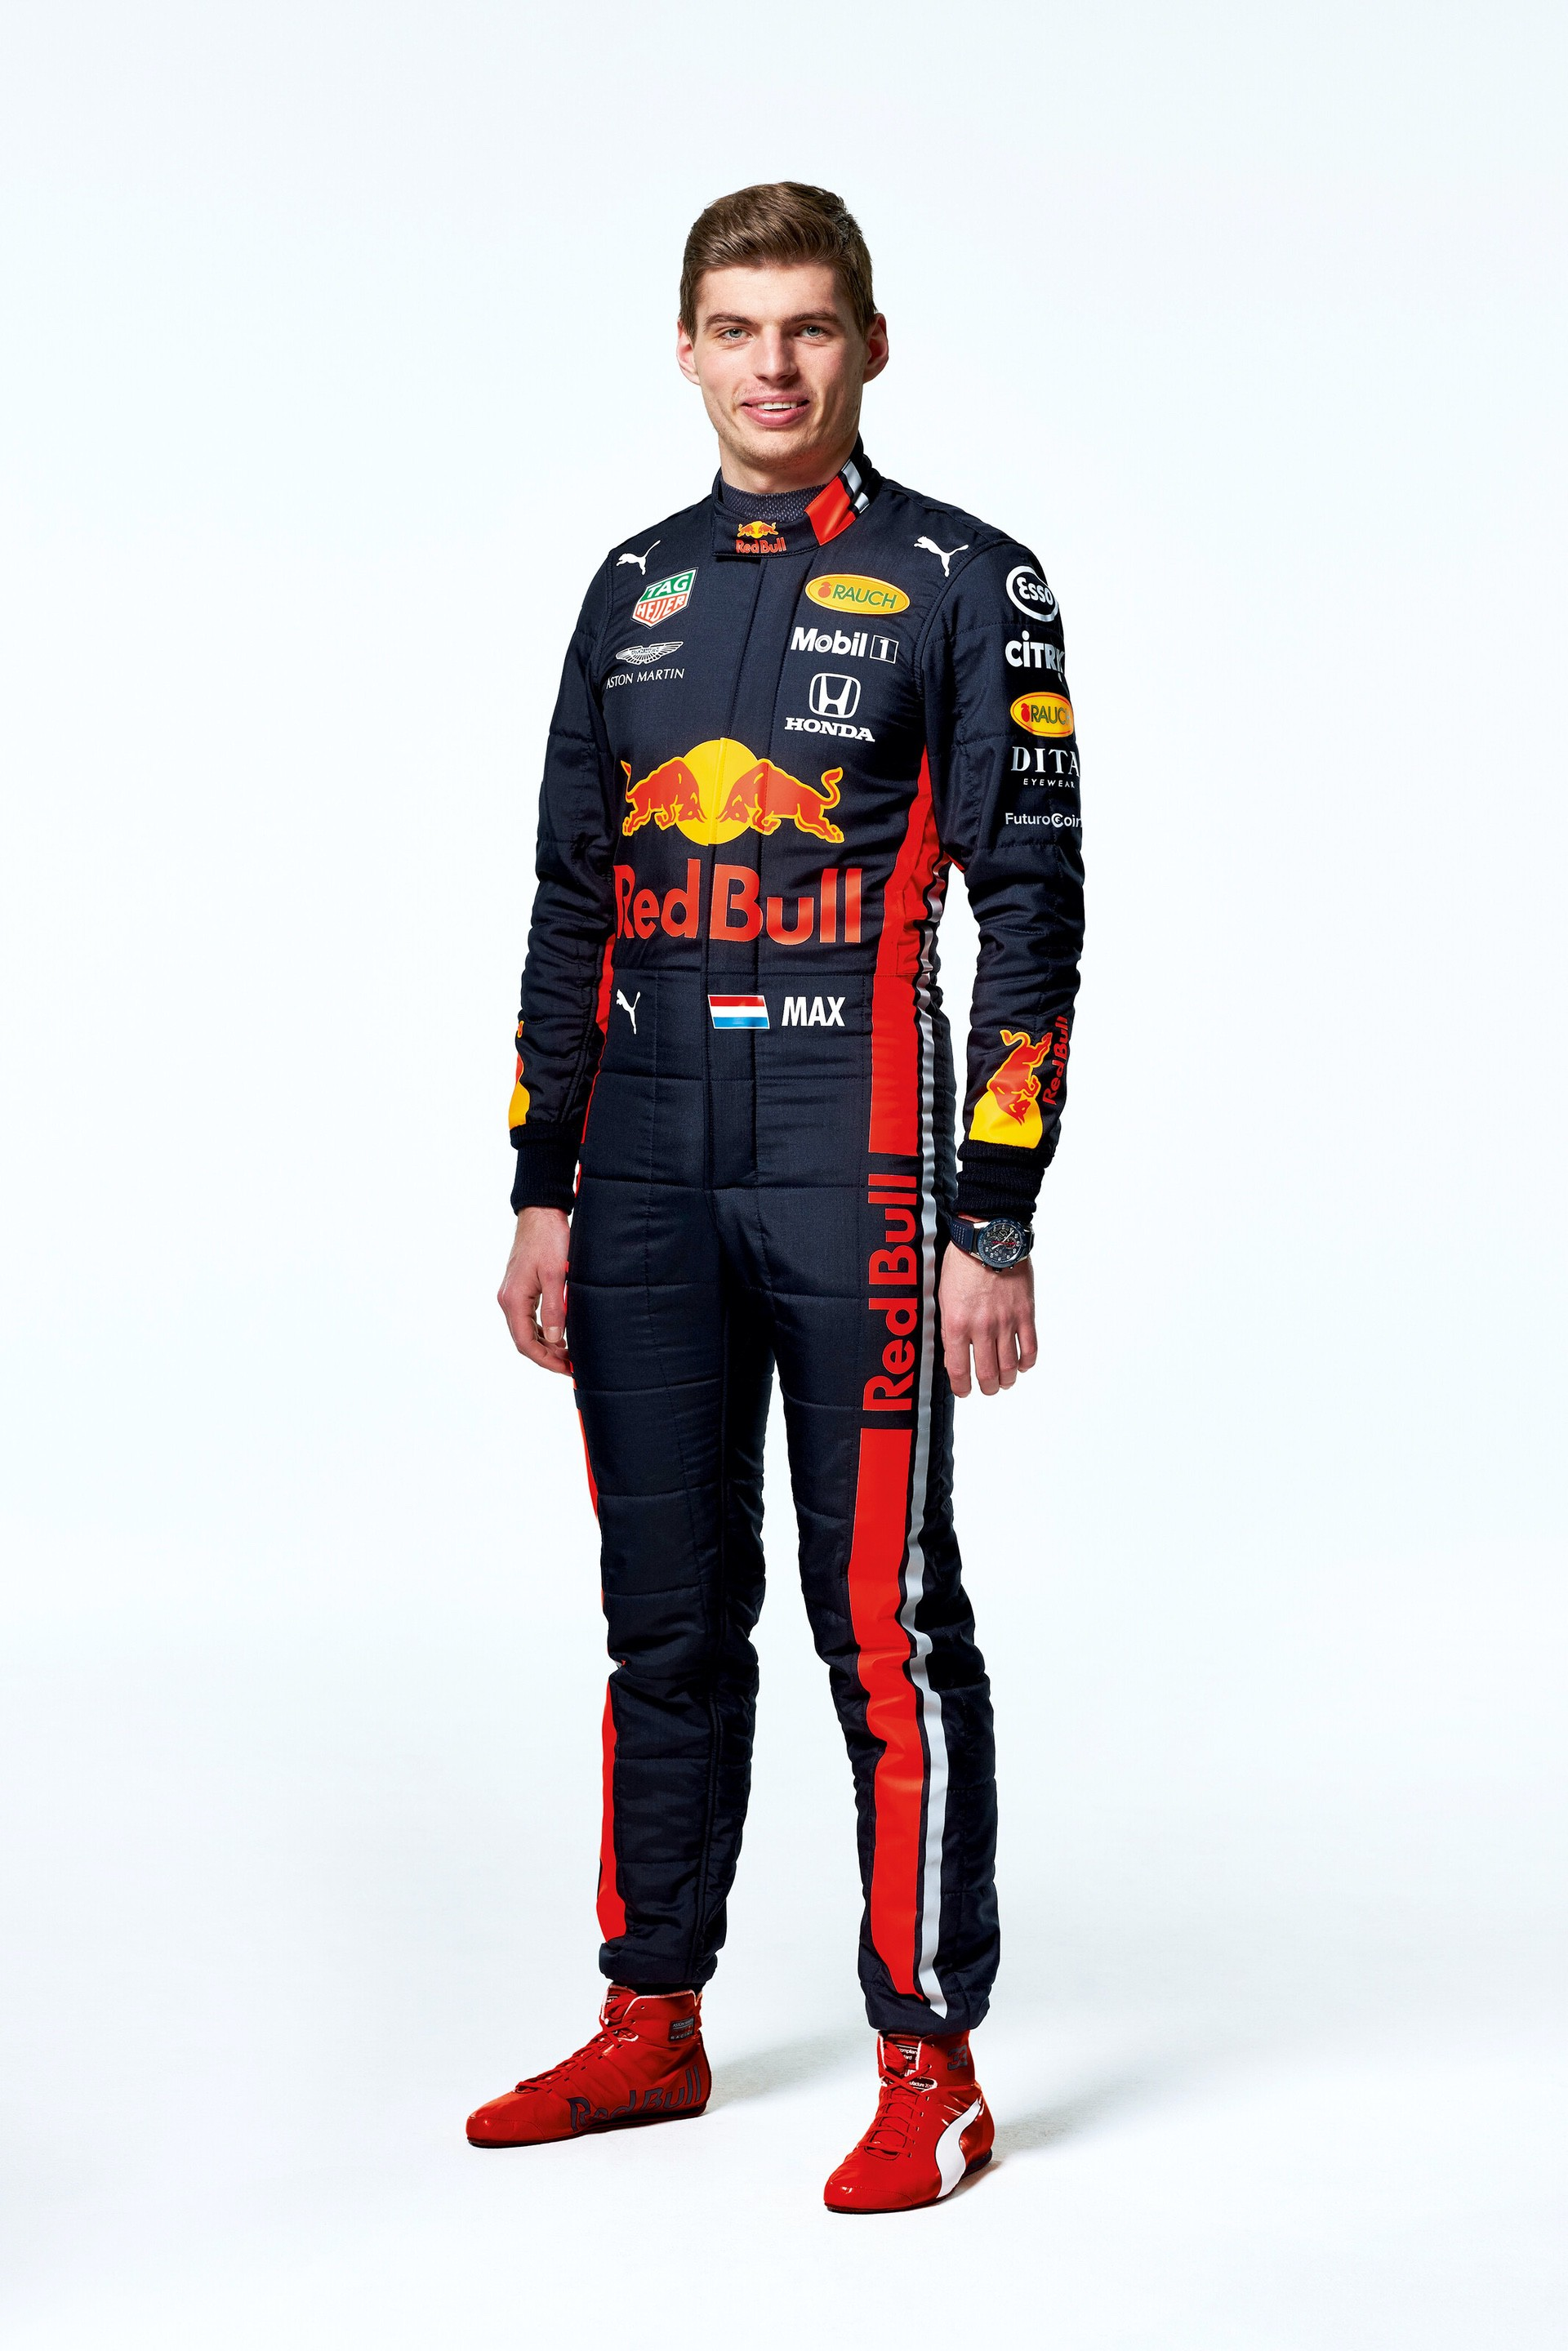 Max Verstappen seen during the Red Bull Racing 2019 Studio Shoot, February 2019, United Kingdom // Dustin Snipes/Red Bull Content Pool // AP-1YFPFH7Q51W11 // Usage for editorial use only // Please go to www.redbullcontentpool.com for further information. //